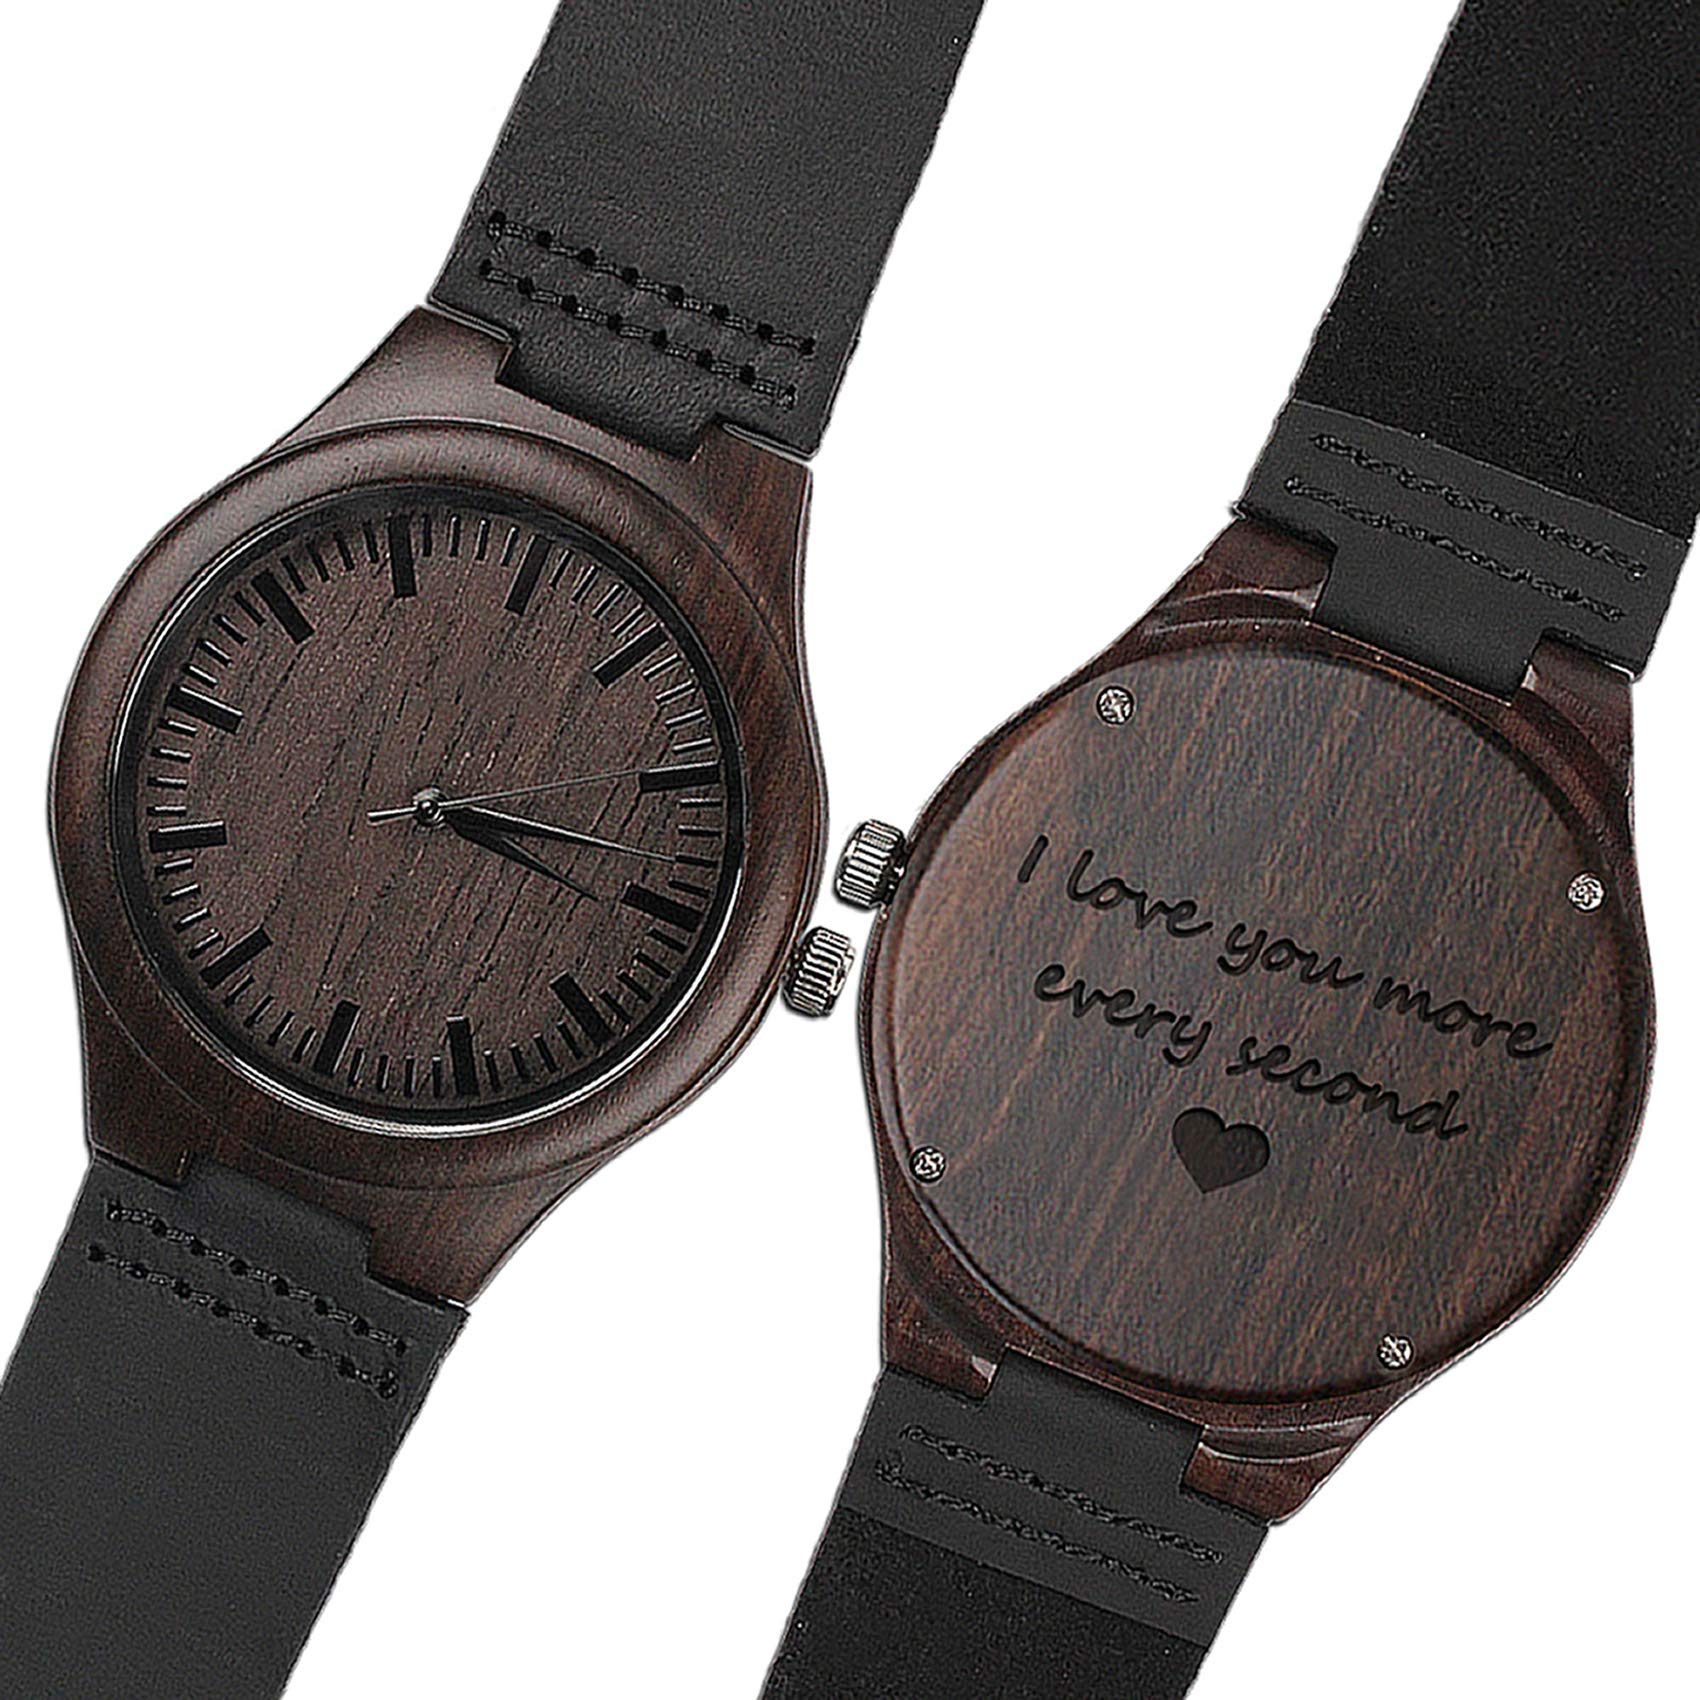 KOSTING Wood Watches for Men Black Leather Strap Wristwatches Genuine Leather Band with Gift Box - I Love You More Every Second - Personalized Gifts for Men Husband Gift